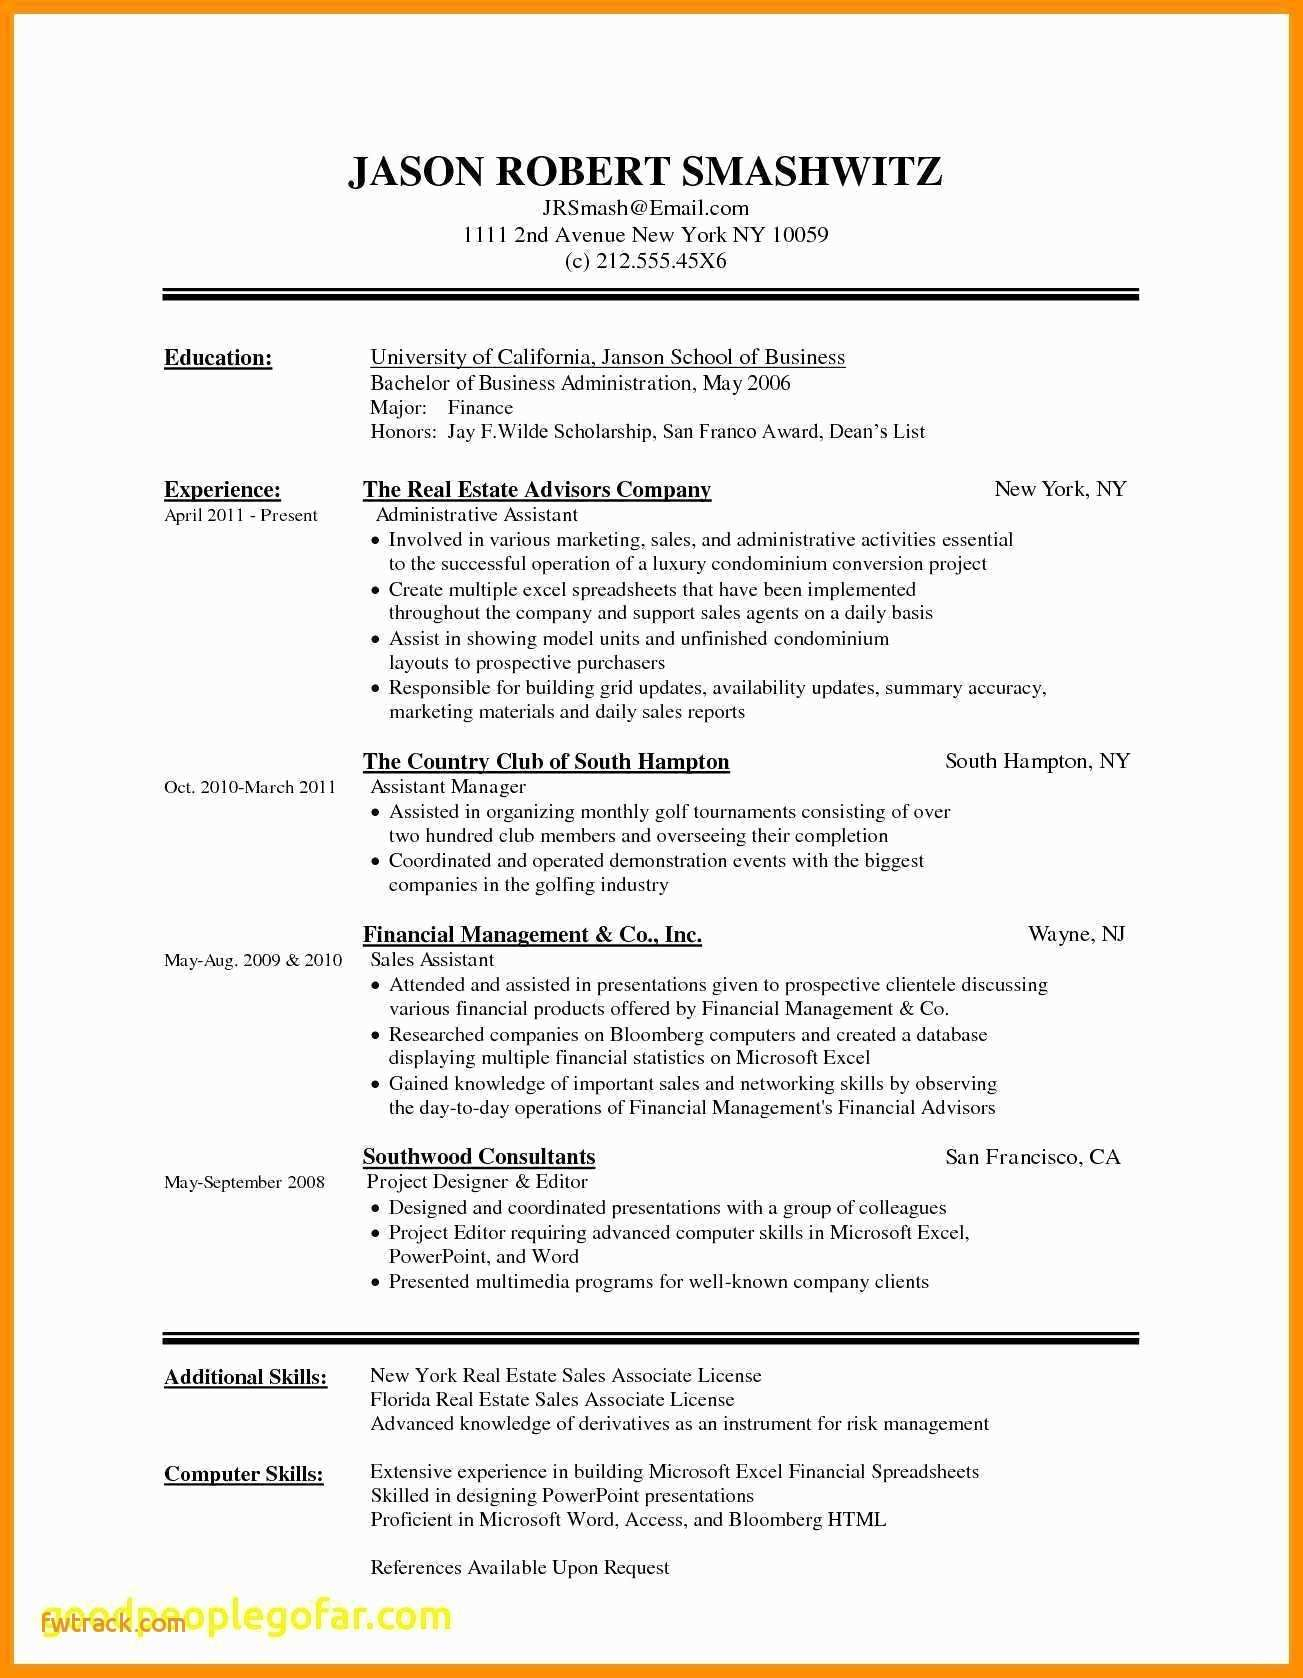 Financial Advisor Resume Template - Resume Templates for Pages Fwtrack Fwtrack